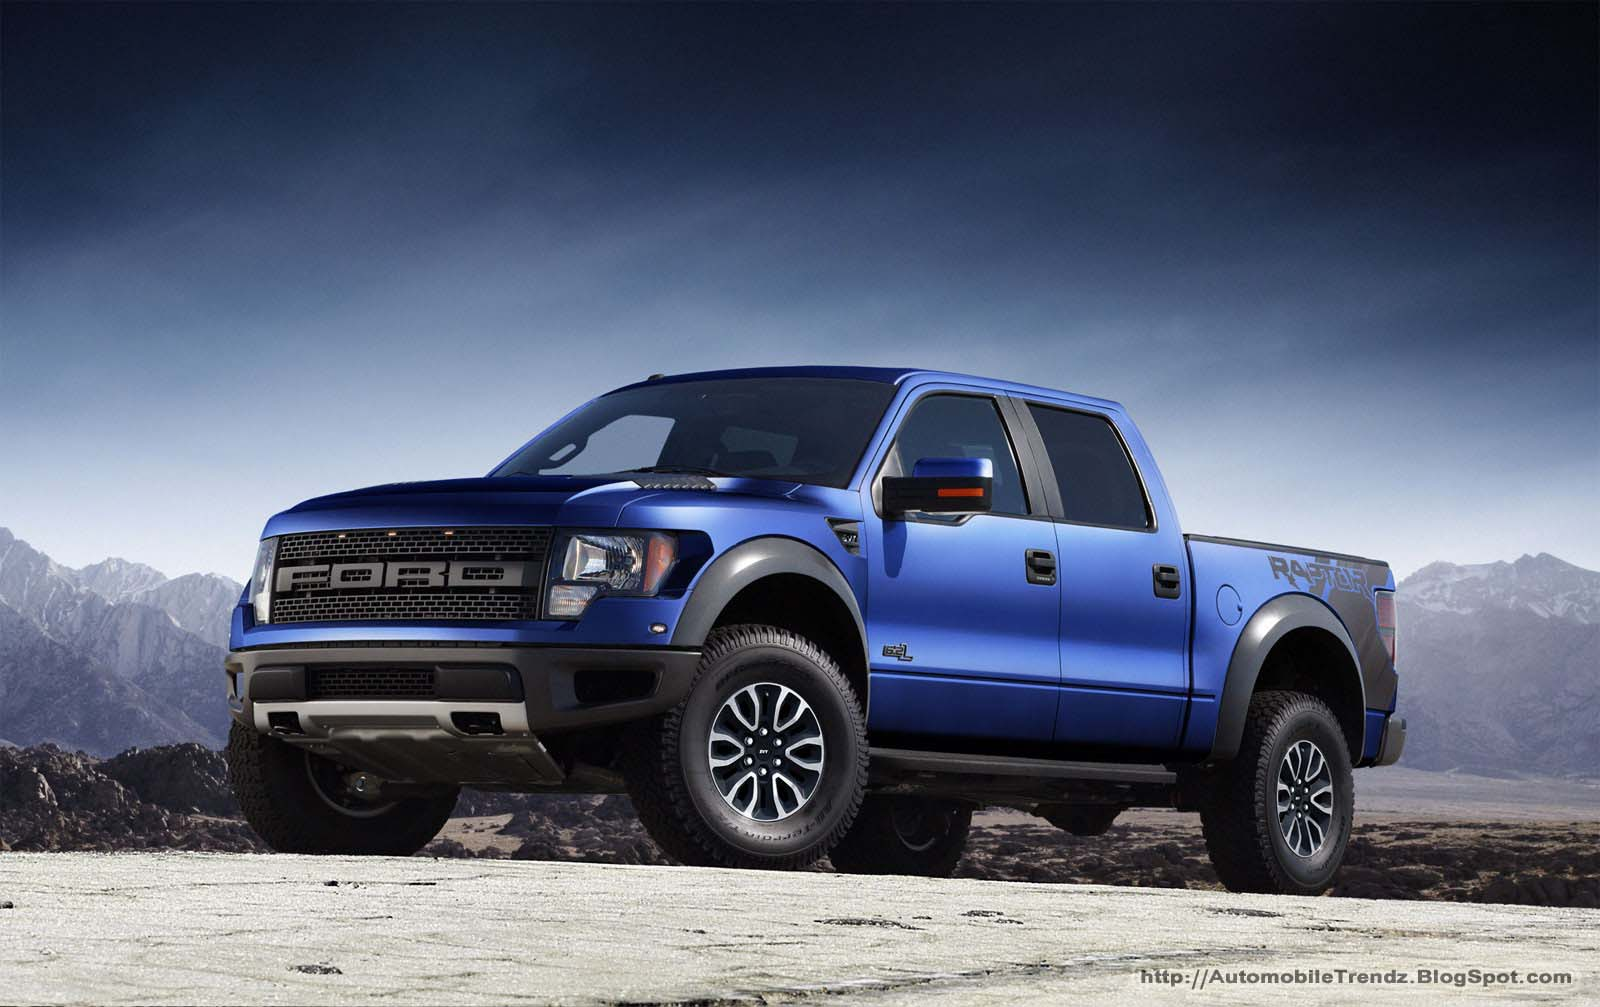 Automobile Trendz Ford Raptor Wallpaper 1600x1007